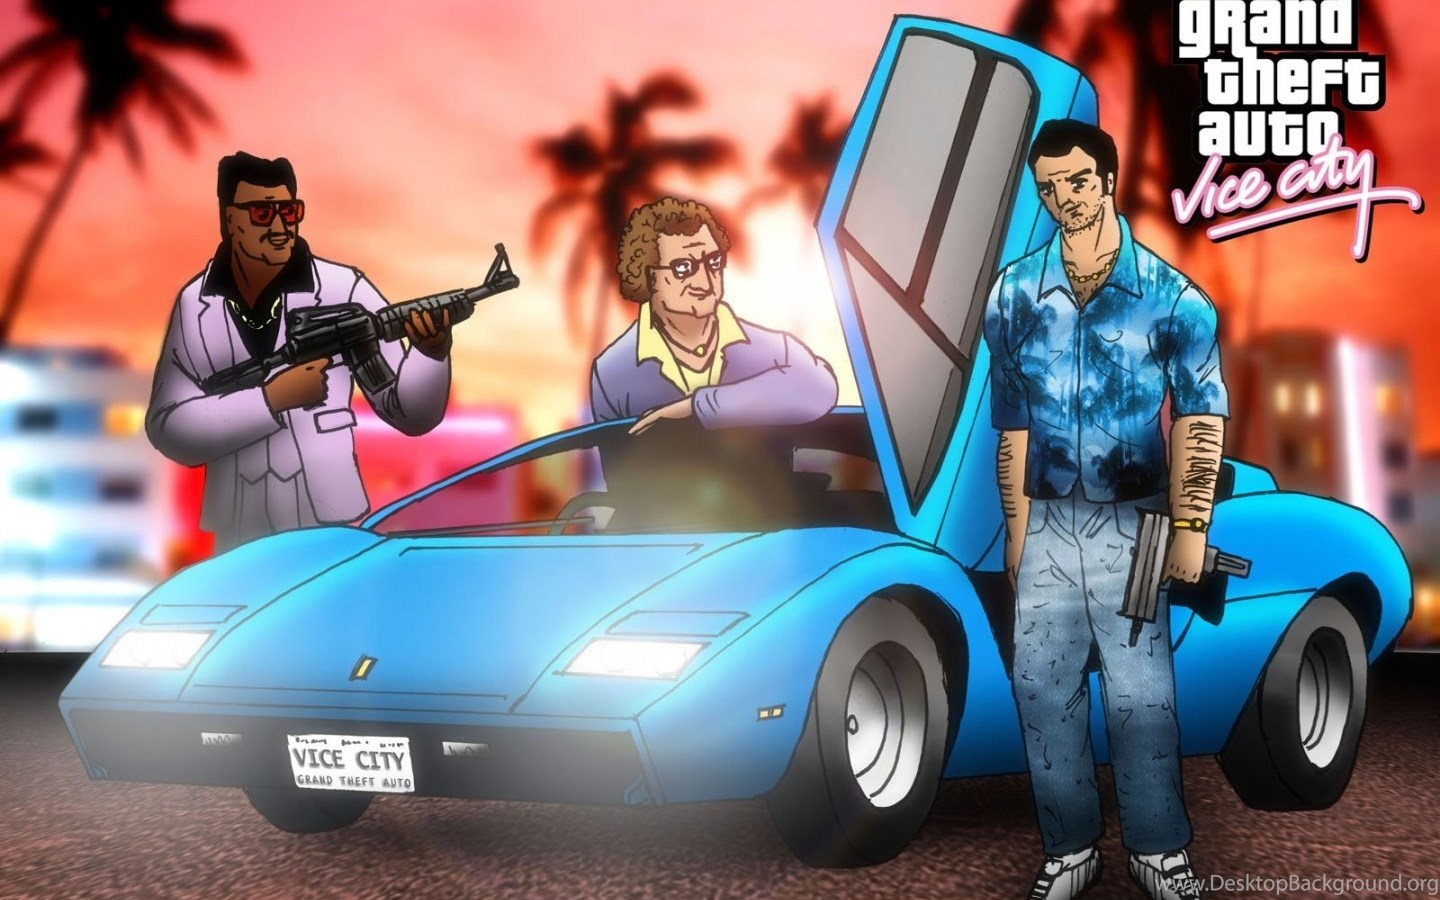 Grand Theft Auto Vice City Hd Wallpapers Desktop Background